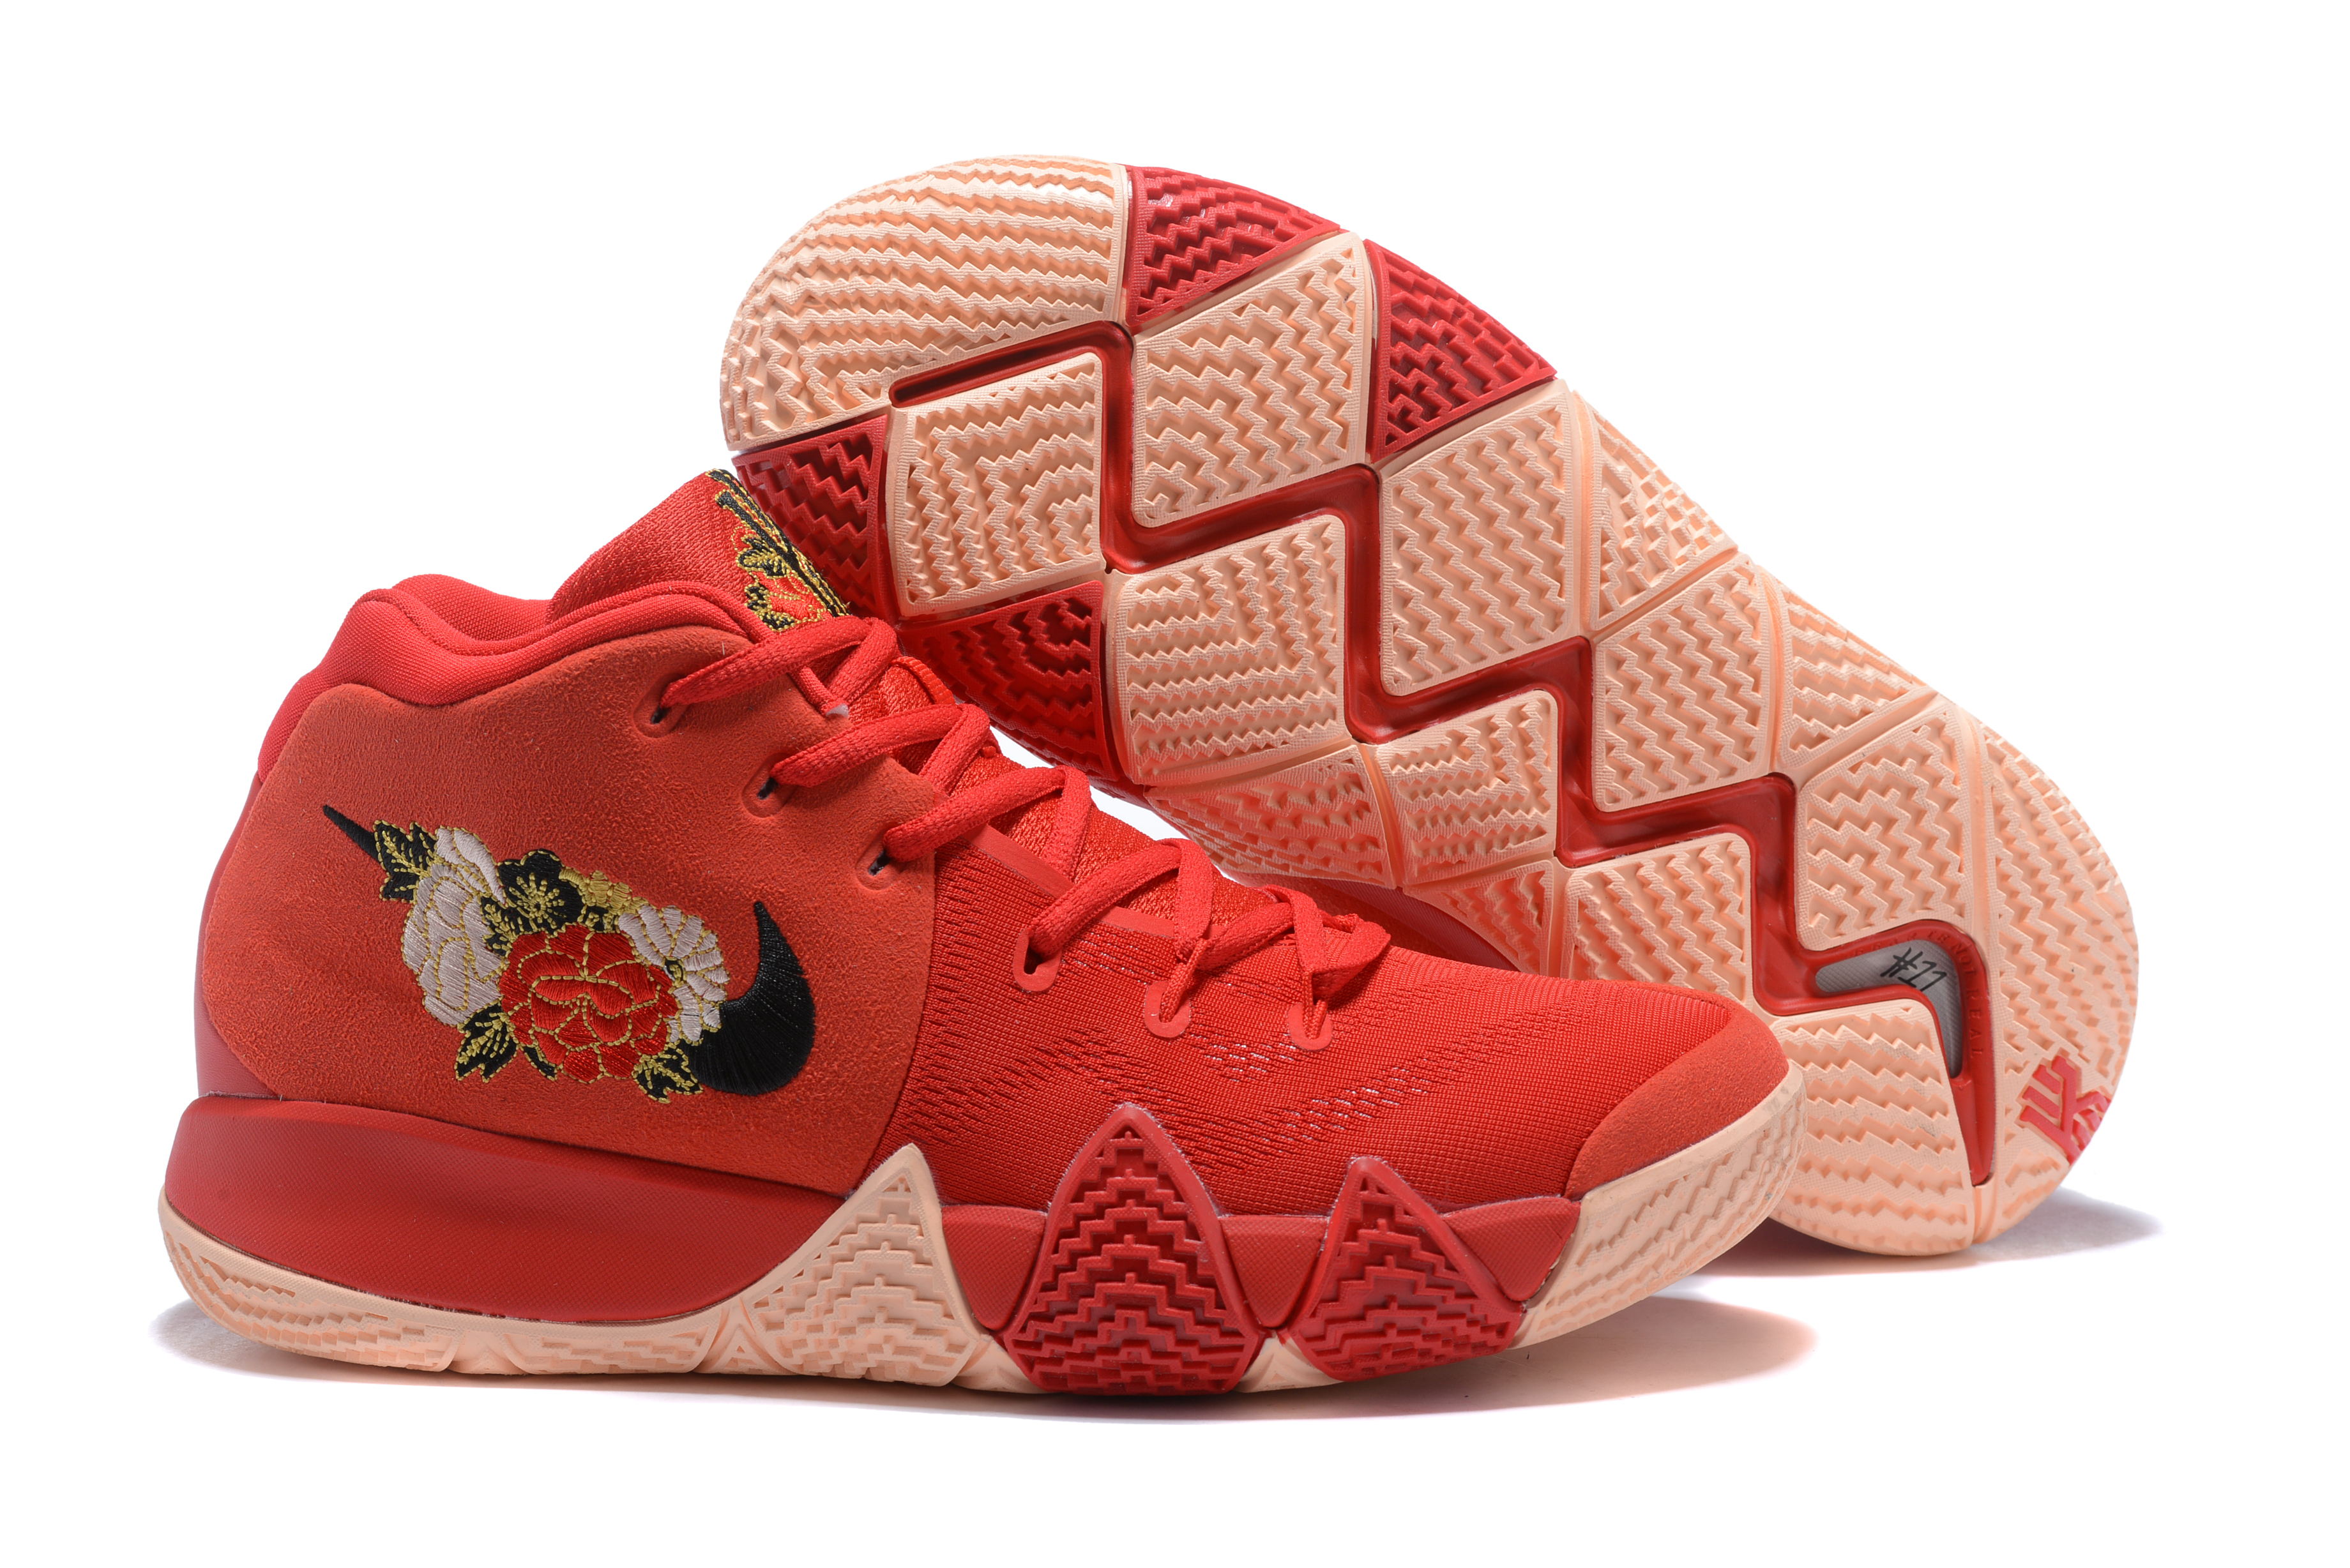 New Nike Kyrie 4 Chinese Red FLowers Shoes